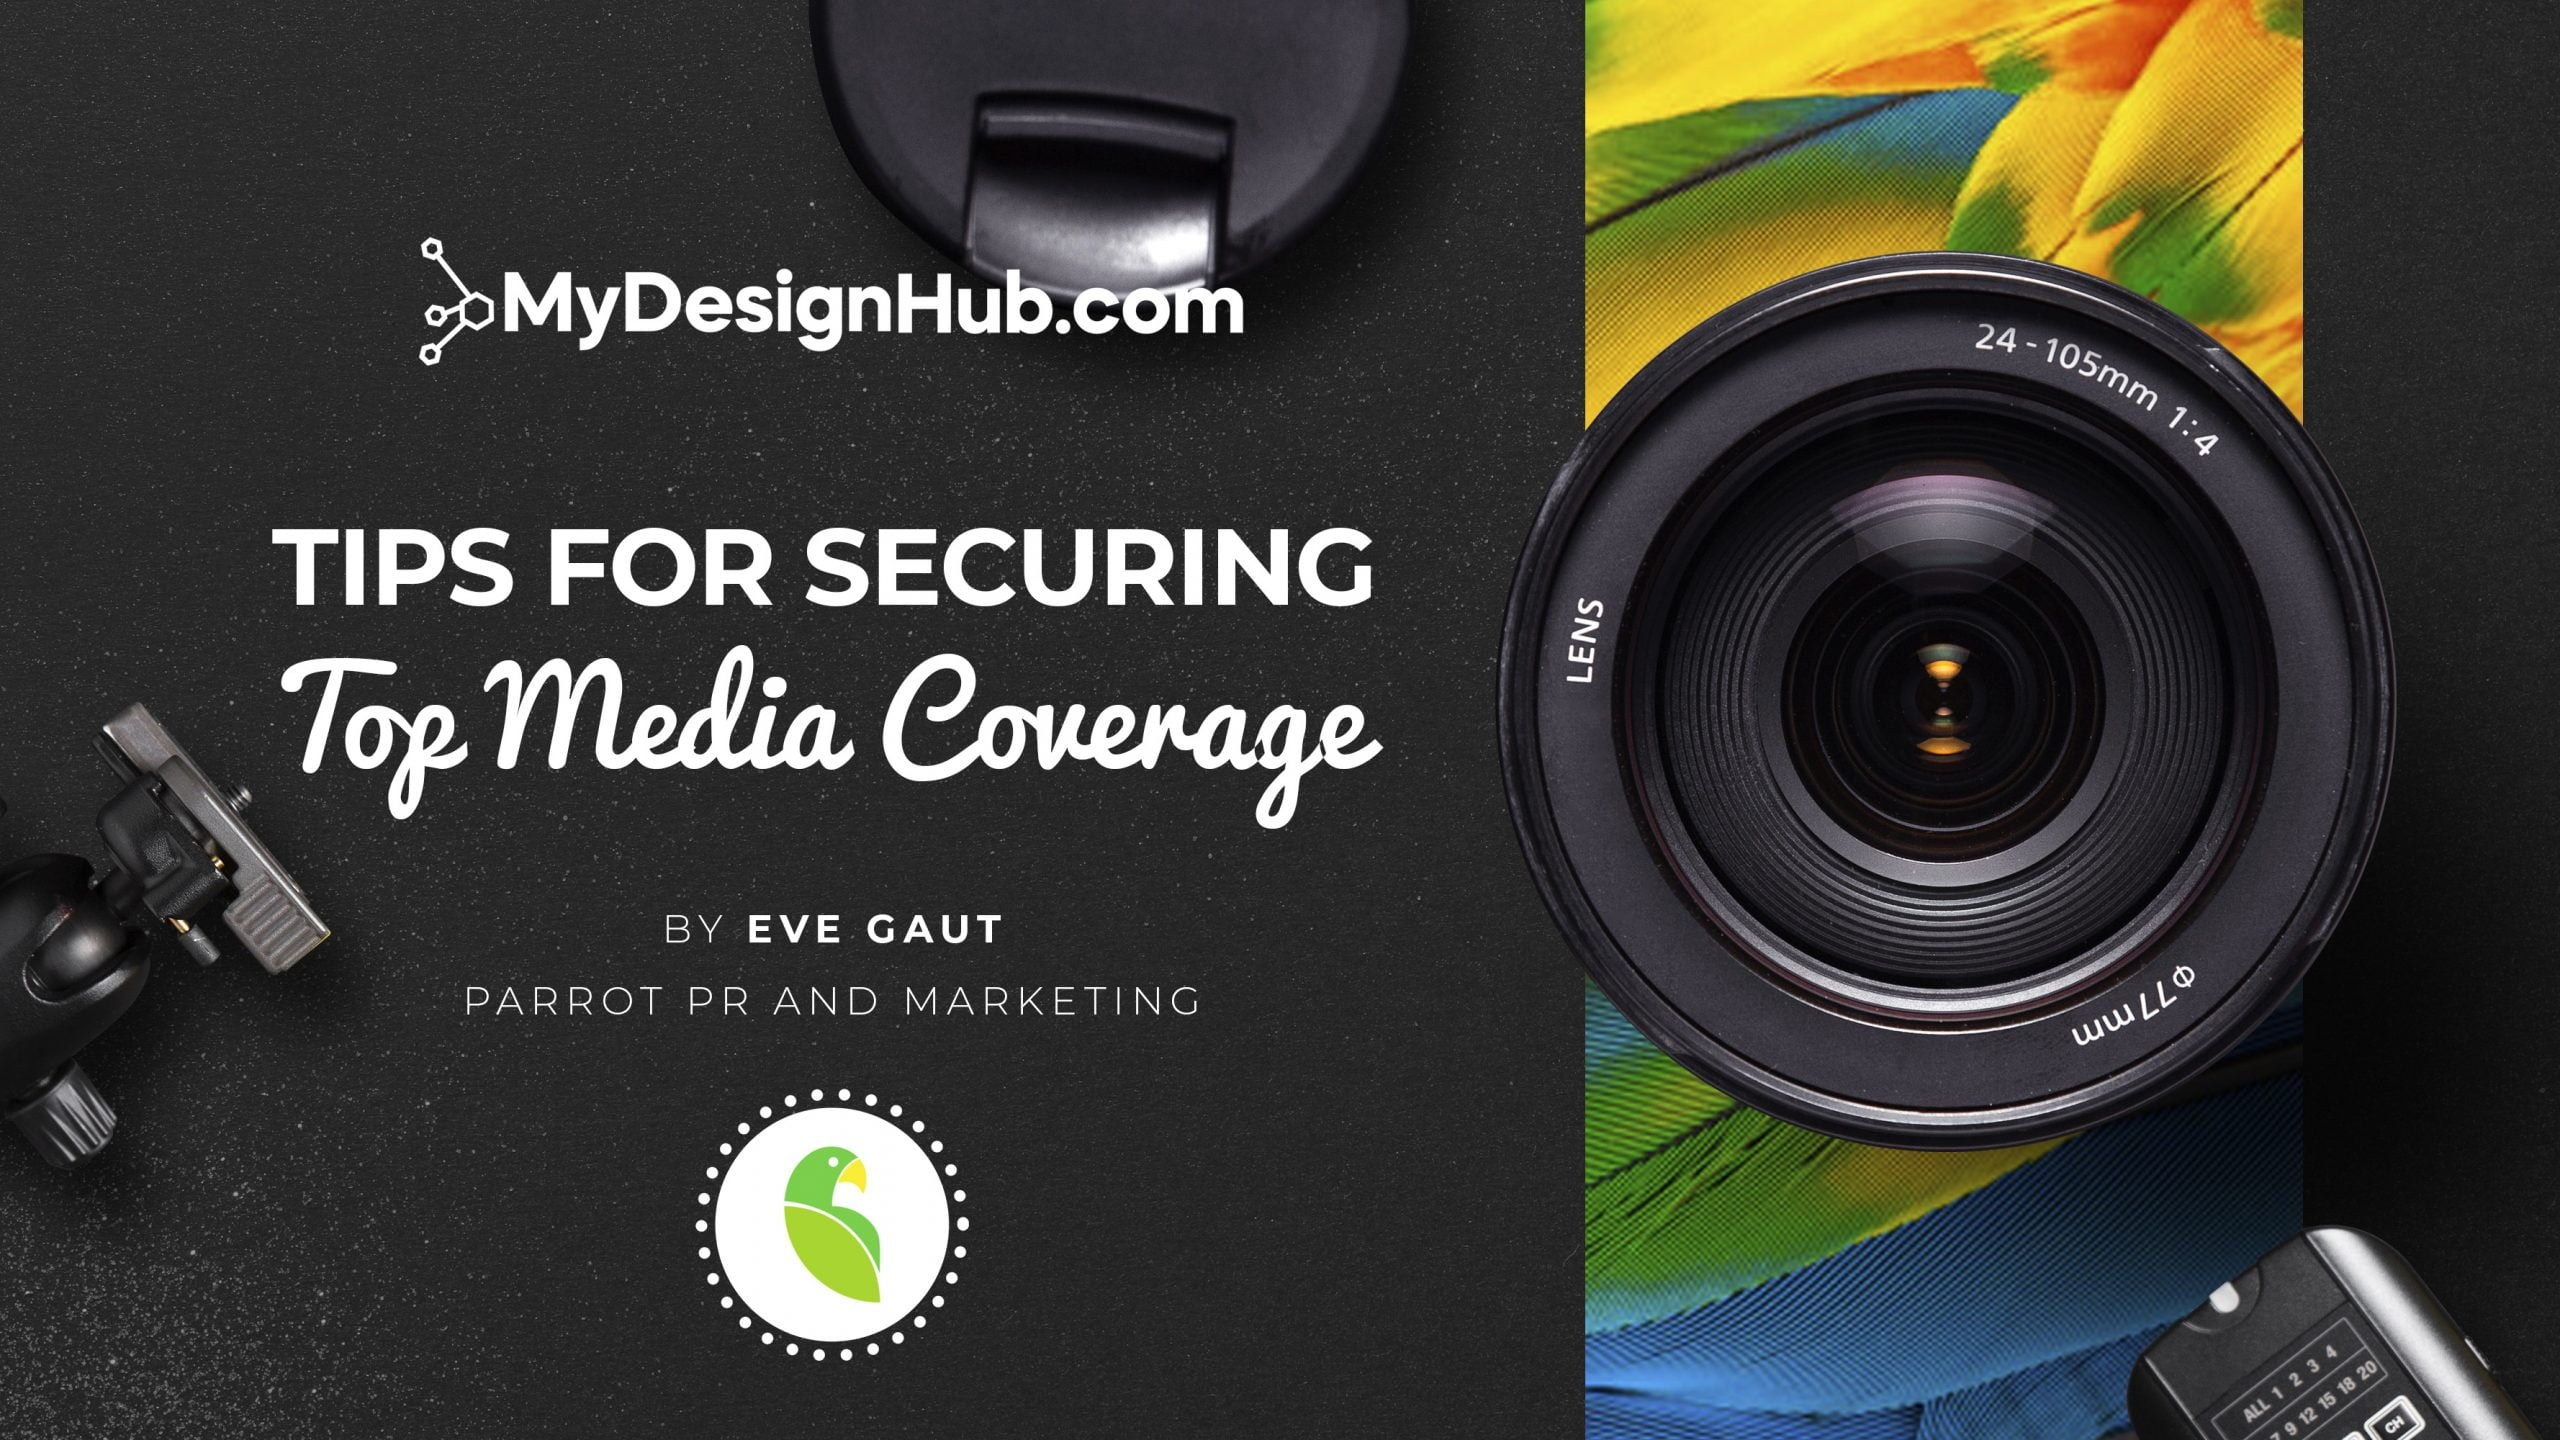 Tips for Securing Top Media Coverage